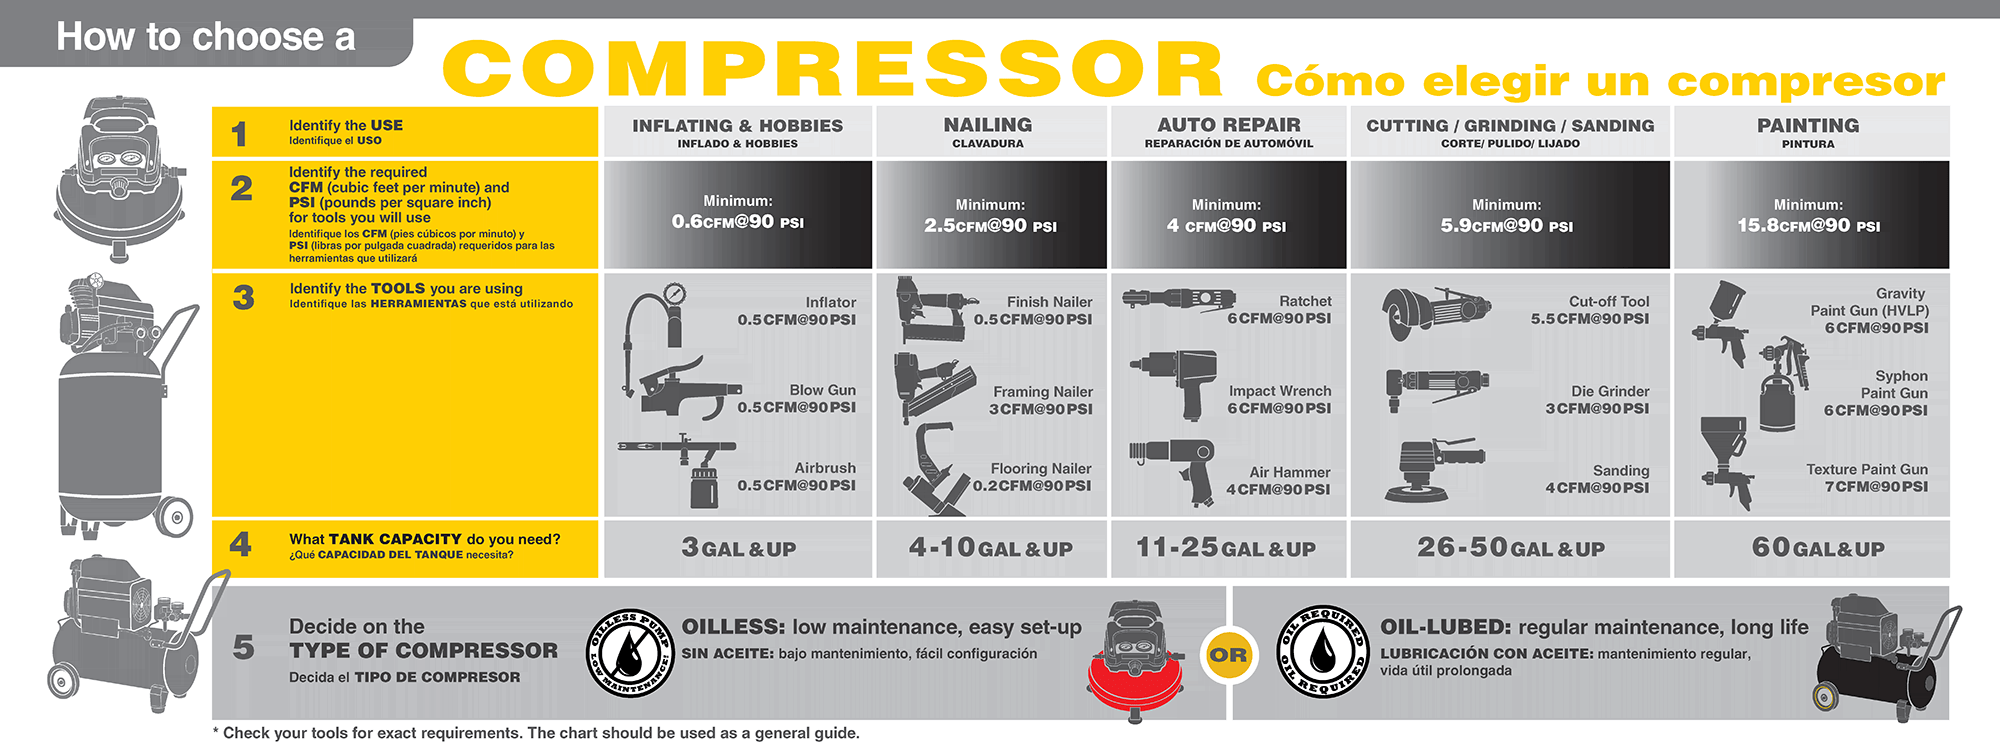 Compressor Guide 3 gallon air compressor 1 3 hp, 100 psi, oilless  at webbmarketing.co